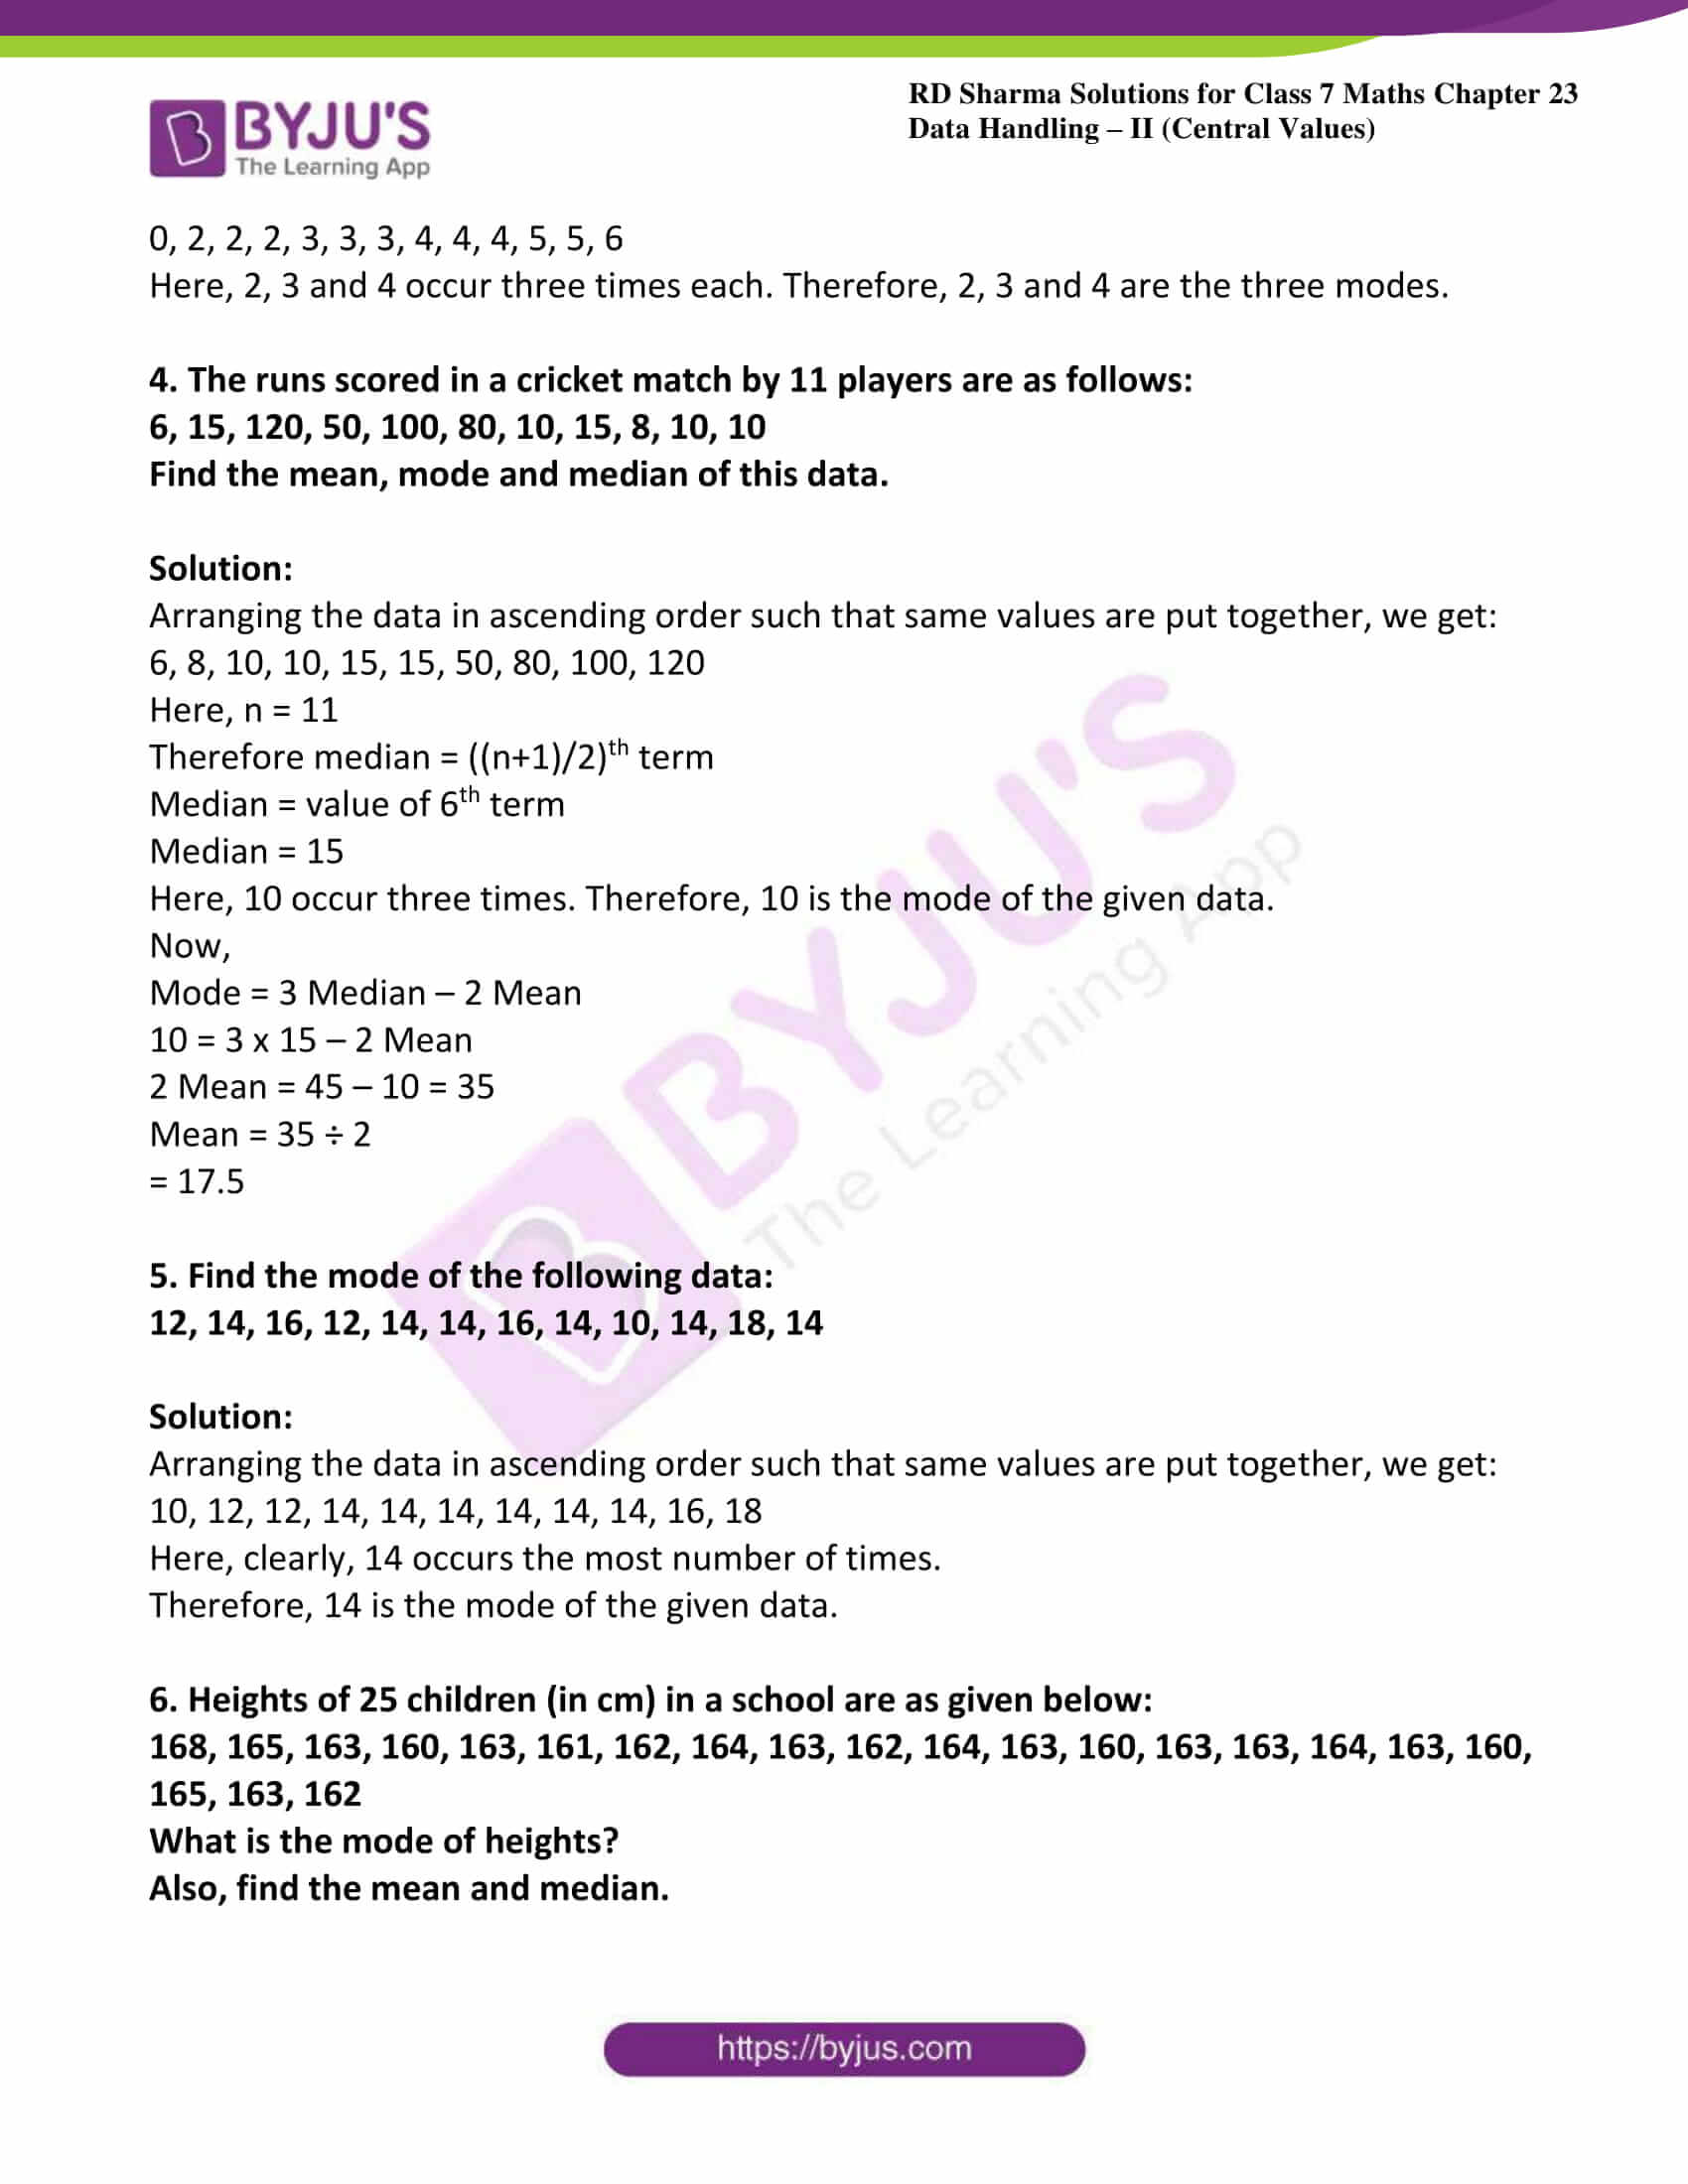 hight resolution of RD Sharma Solutions for Class 7 Maths Chapter 23 - Data Handling - II  (Central Values) Exercise 23.4 - free PDFs are available here.